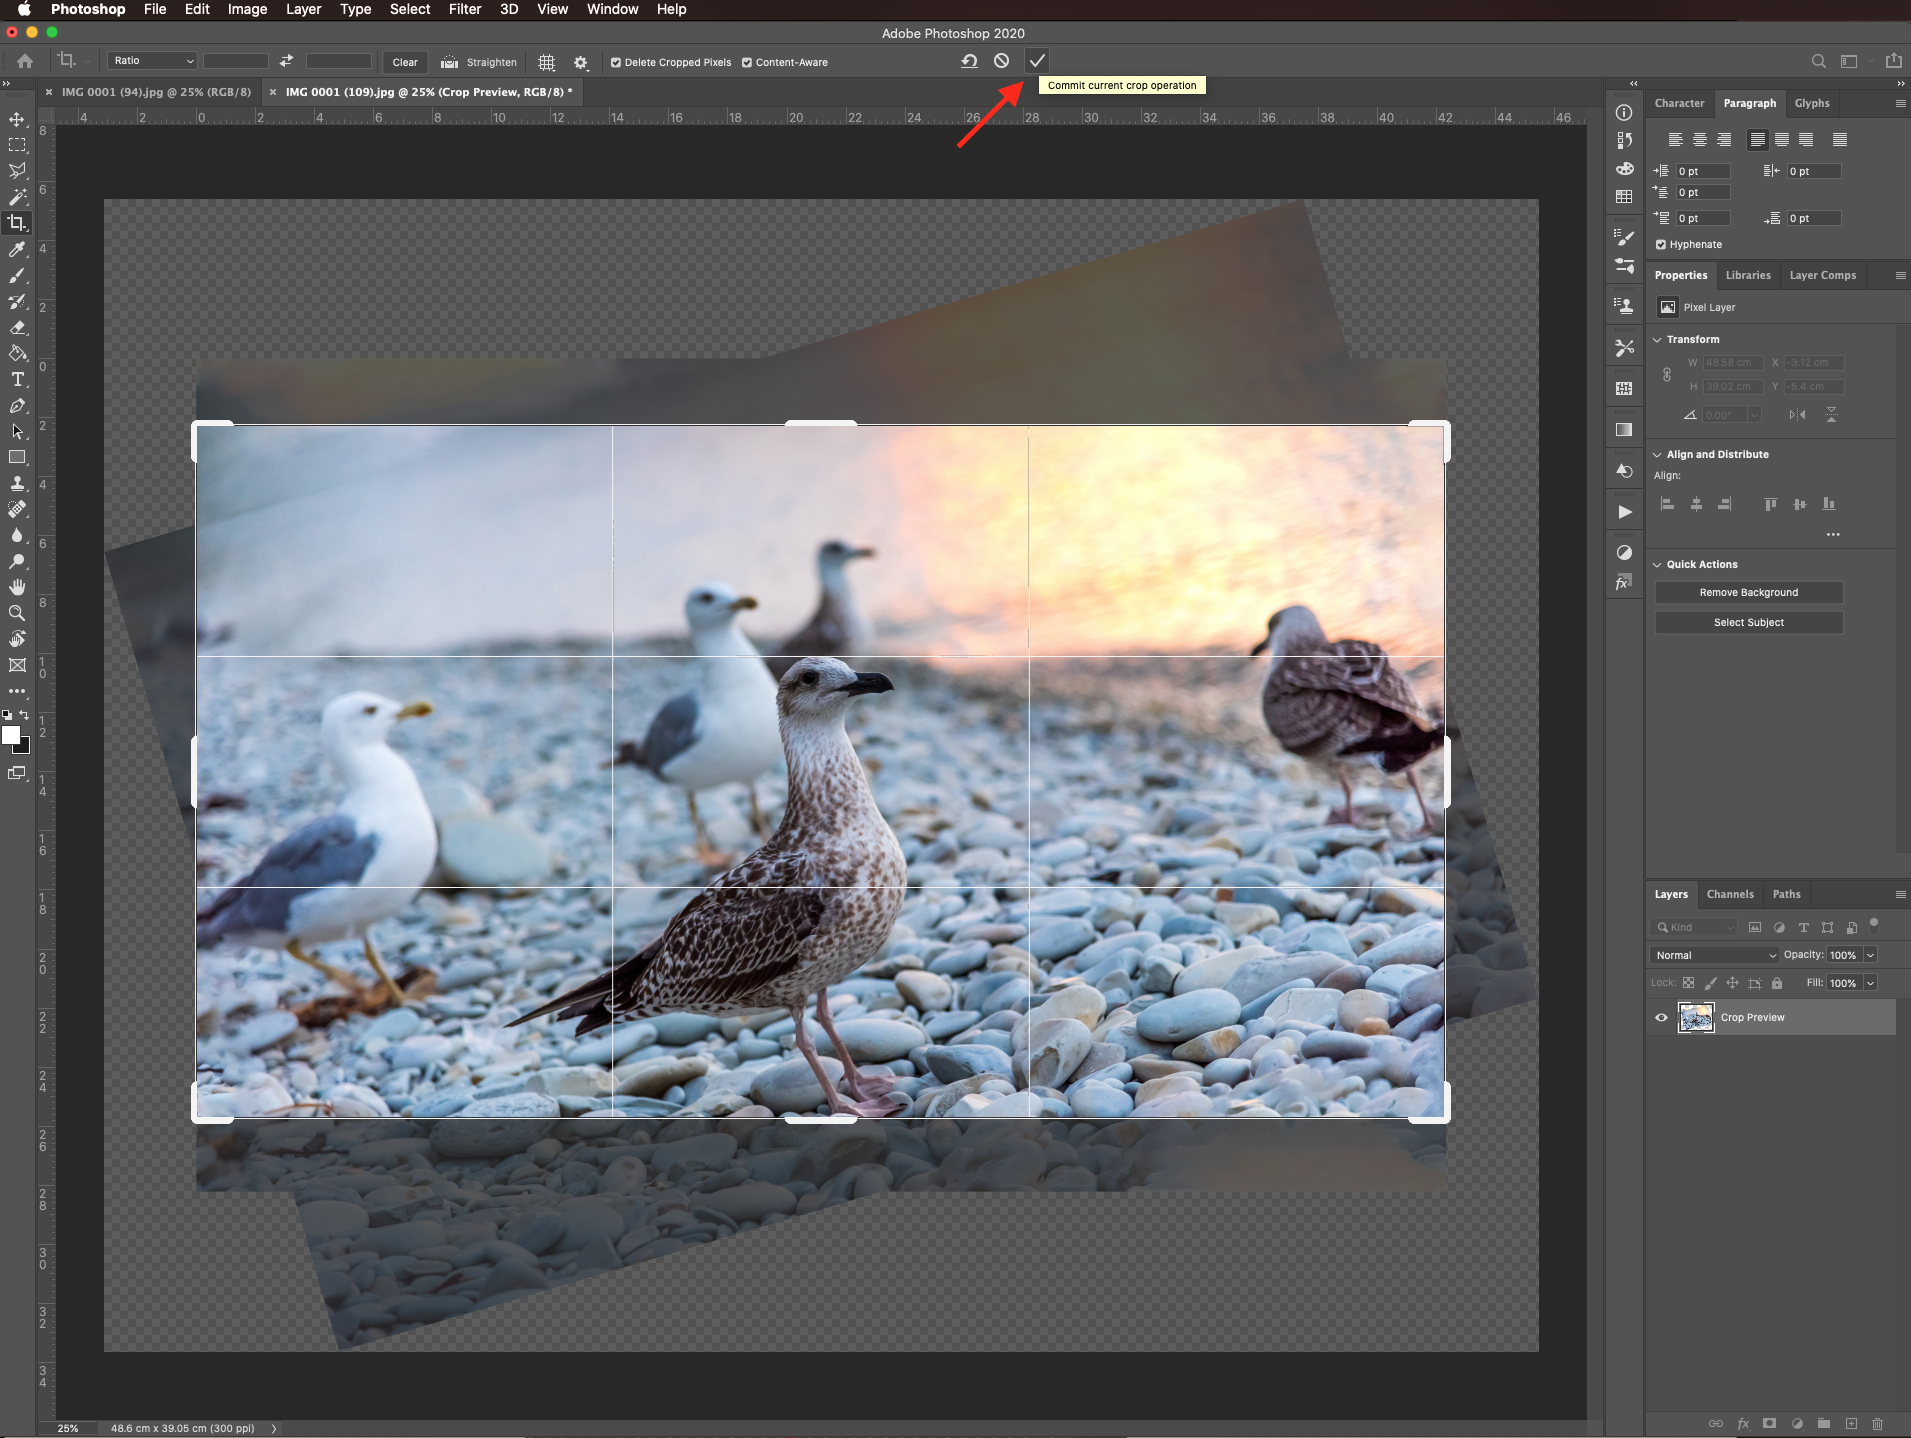 Commit changes in Photoshop